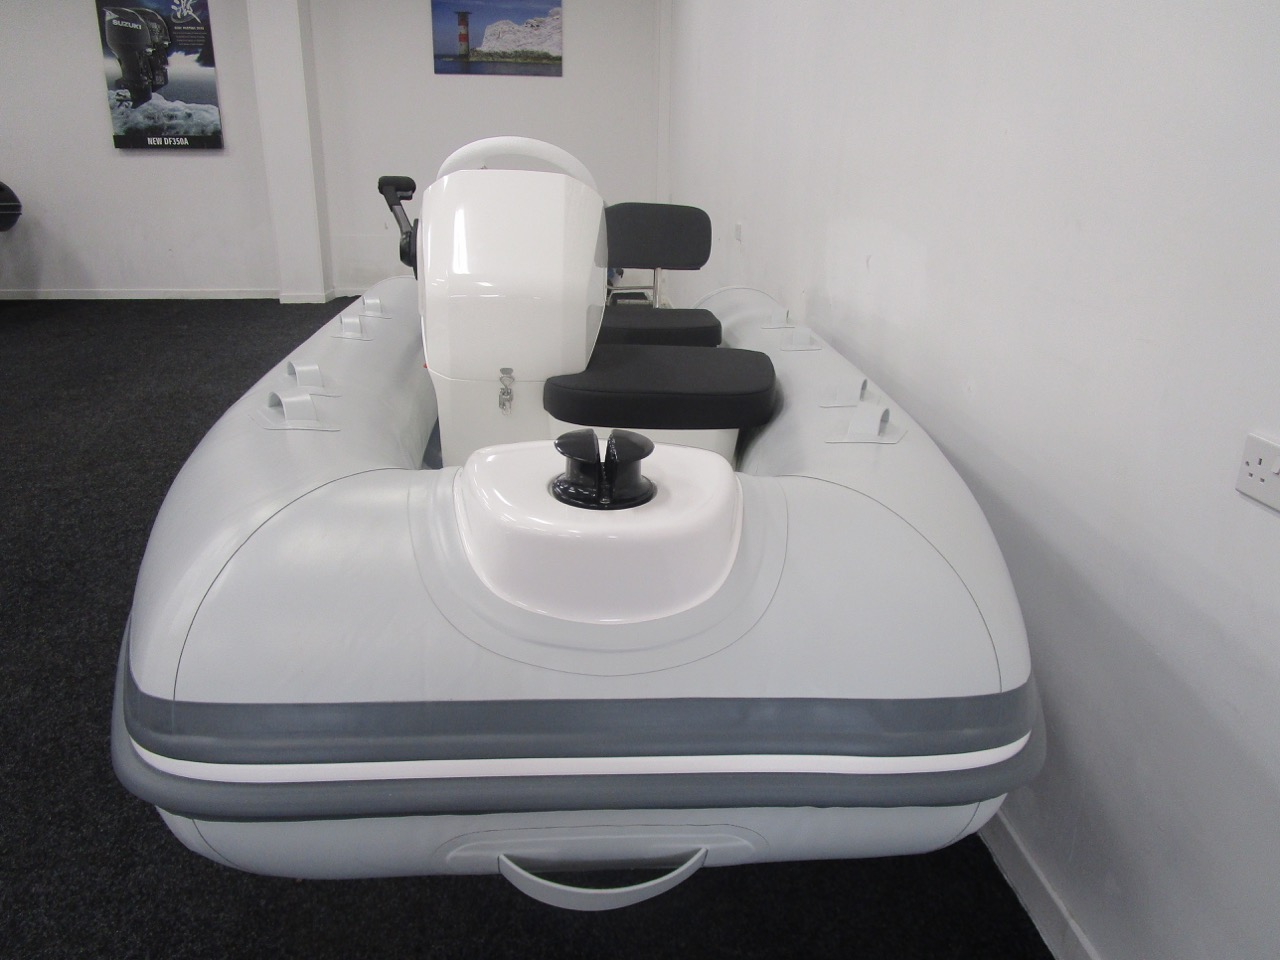 GRAND S330 RIB tender  viewed from the bow